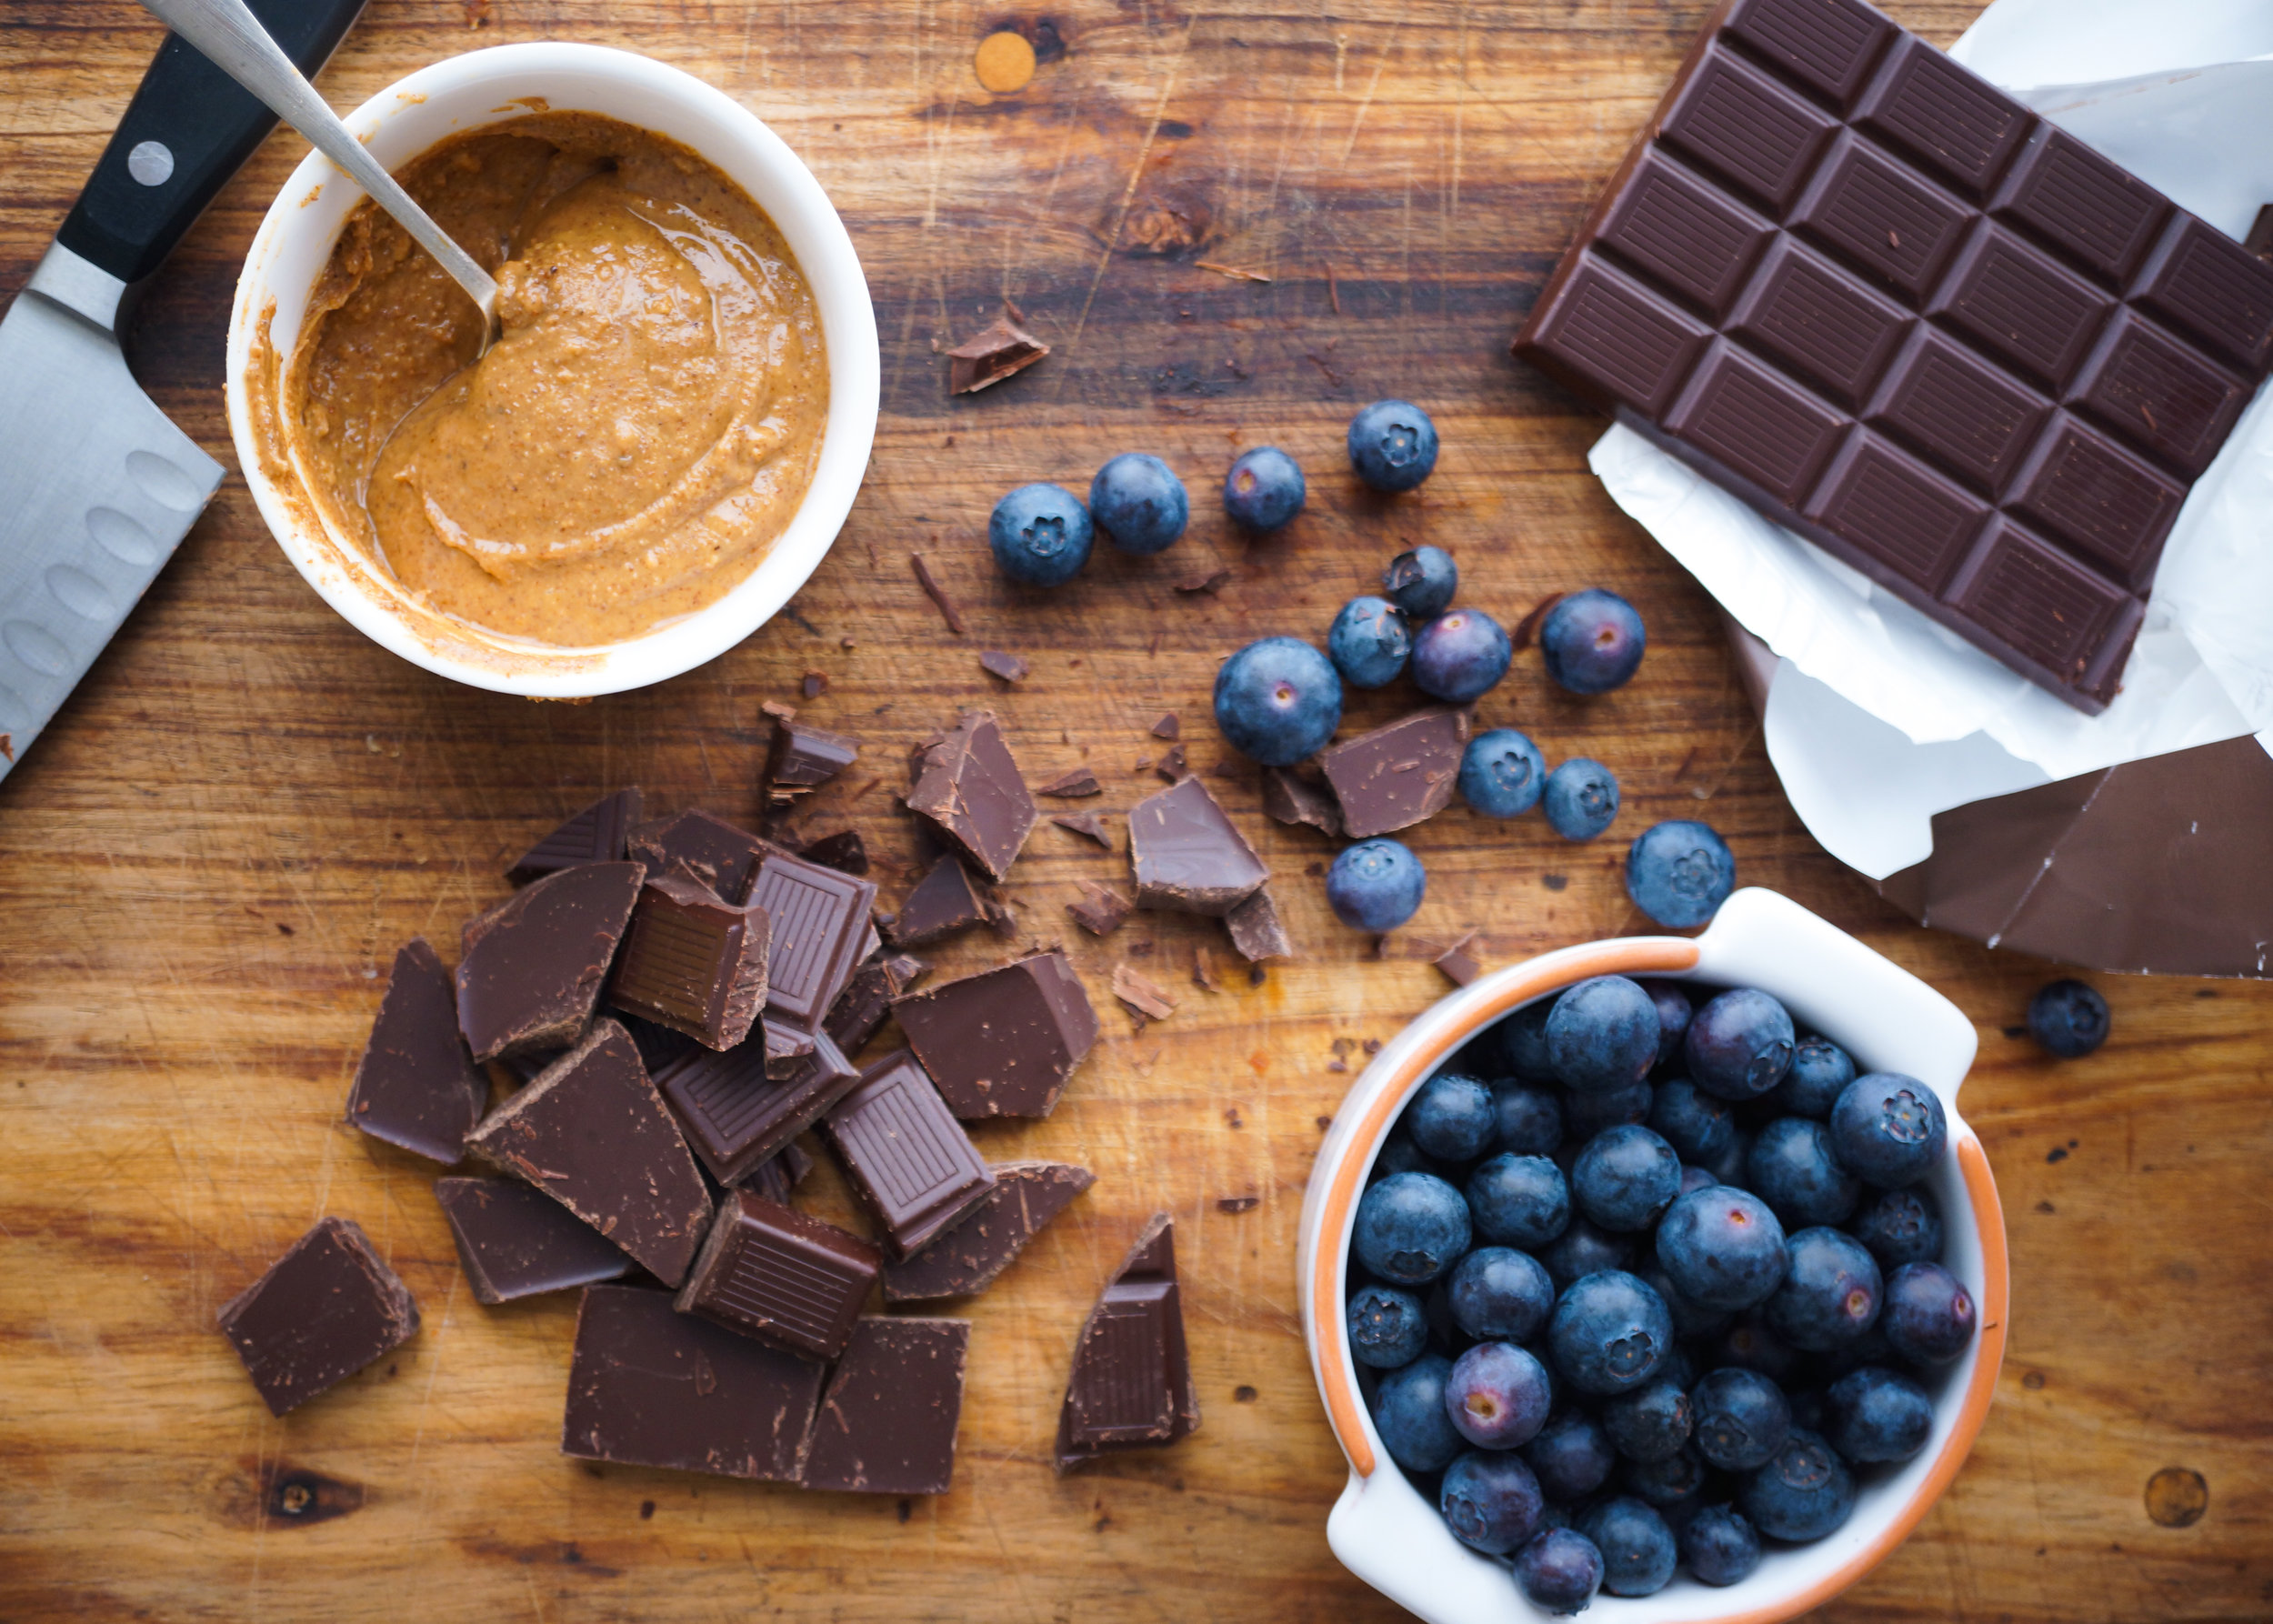 Blueberry & almond butter cups